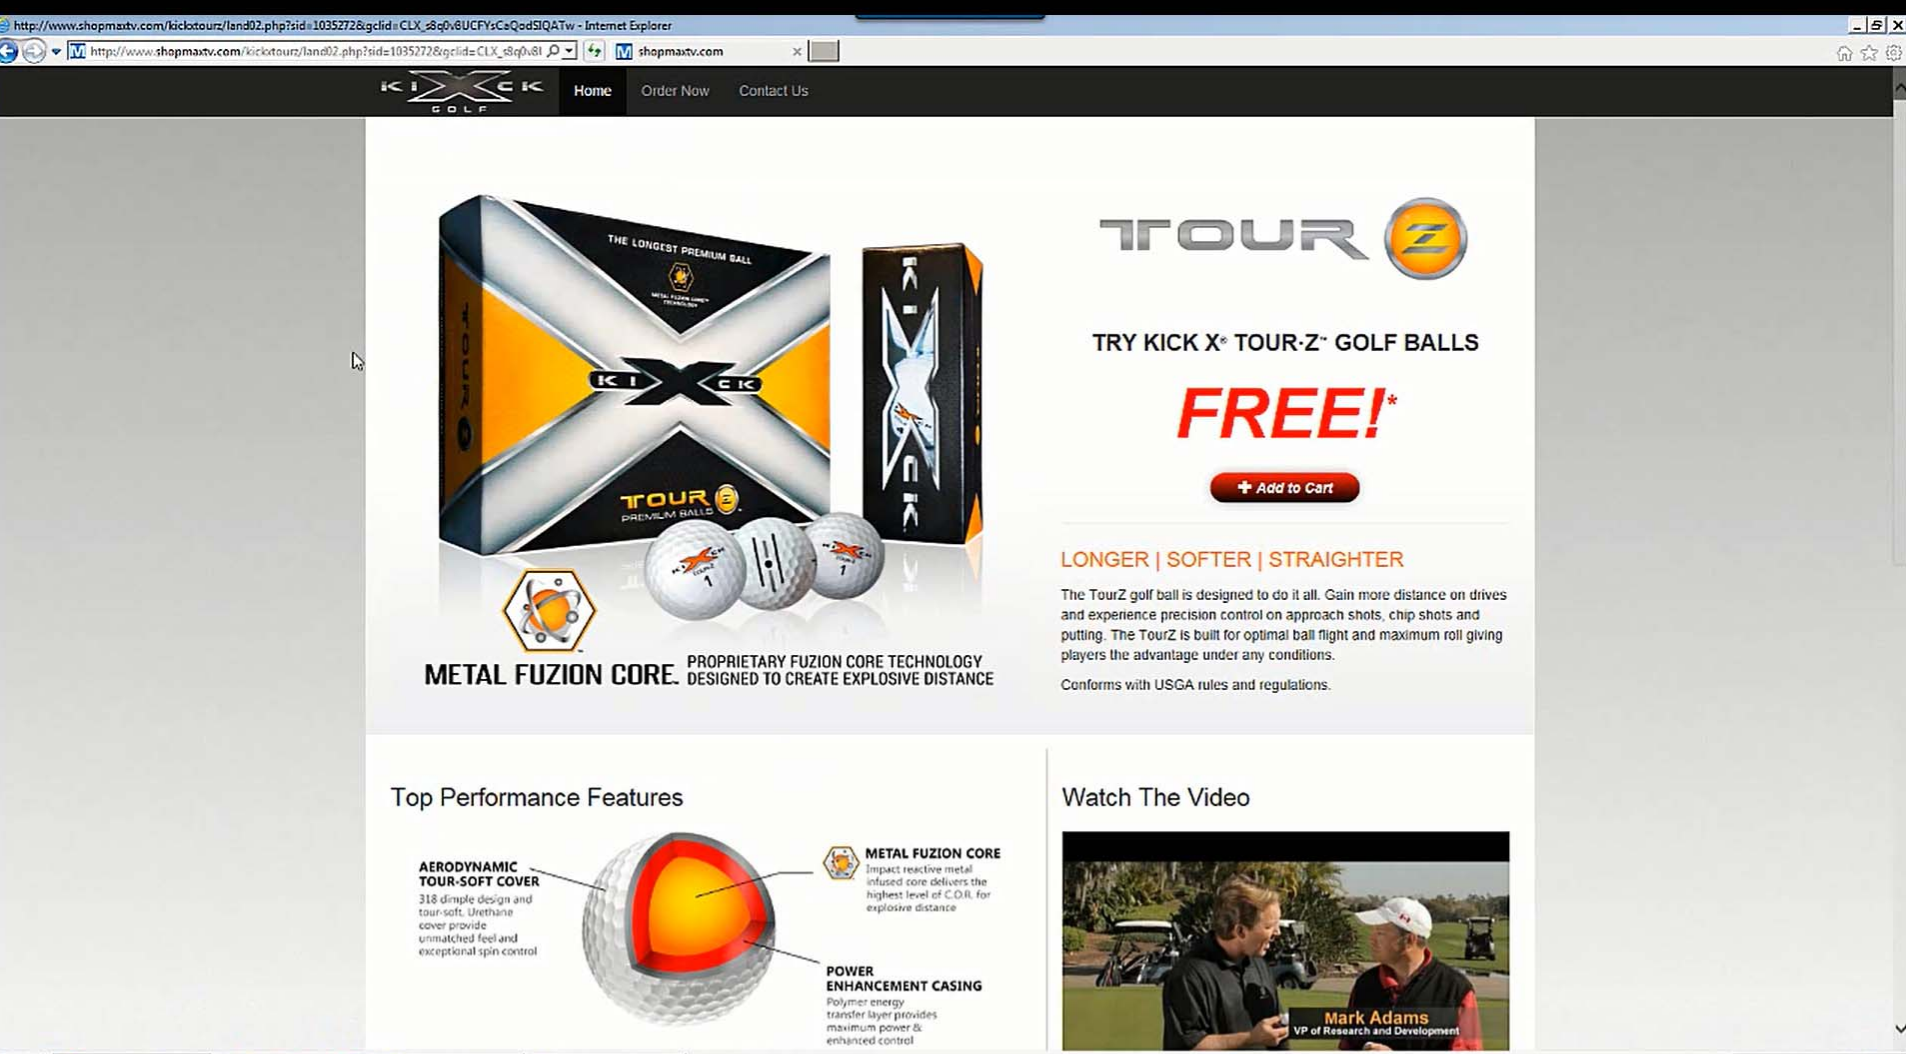 Various golf goods like the Kick X Tour Z Golf Balls were marketed deceptively, according to the FTC.